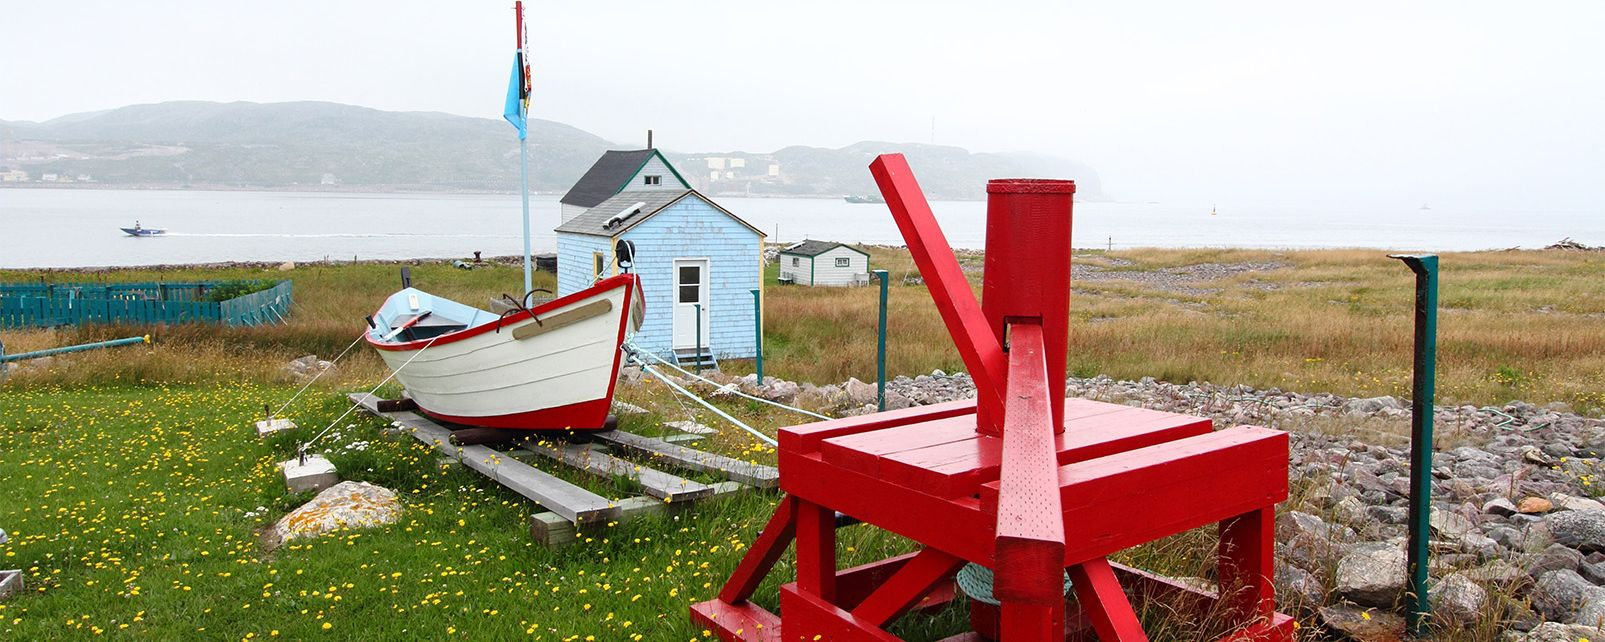 Territorial Collectivity of Saint Pierre and Miquelon,